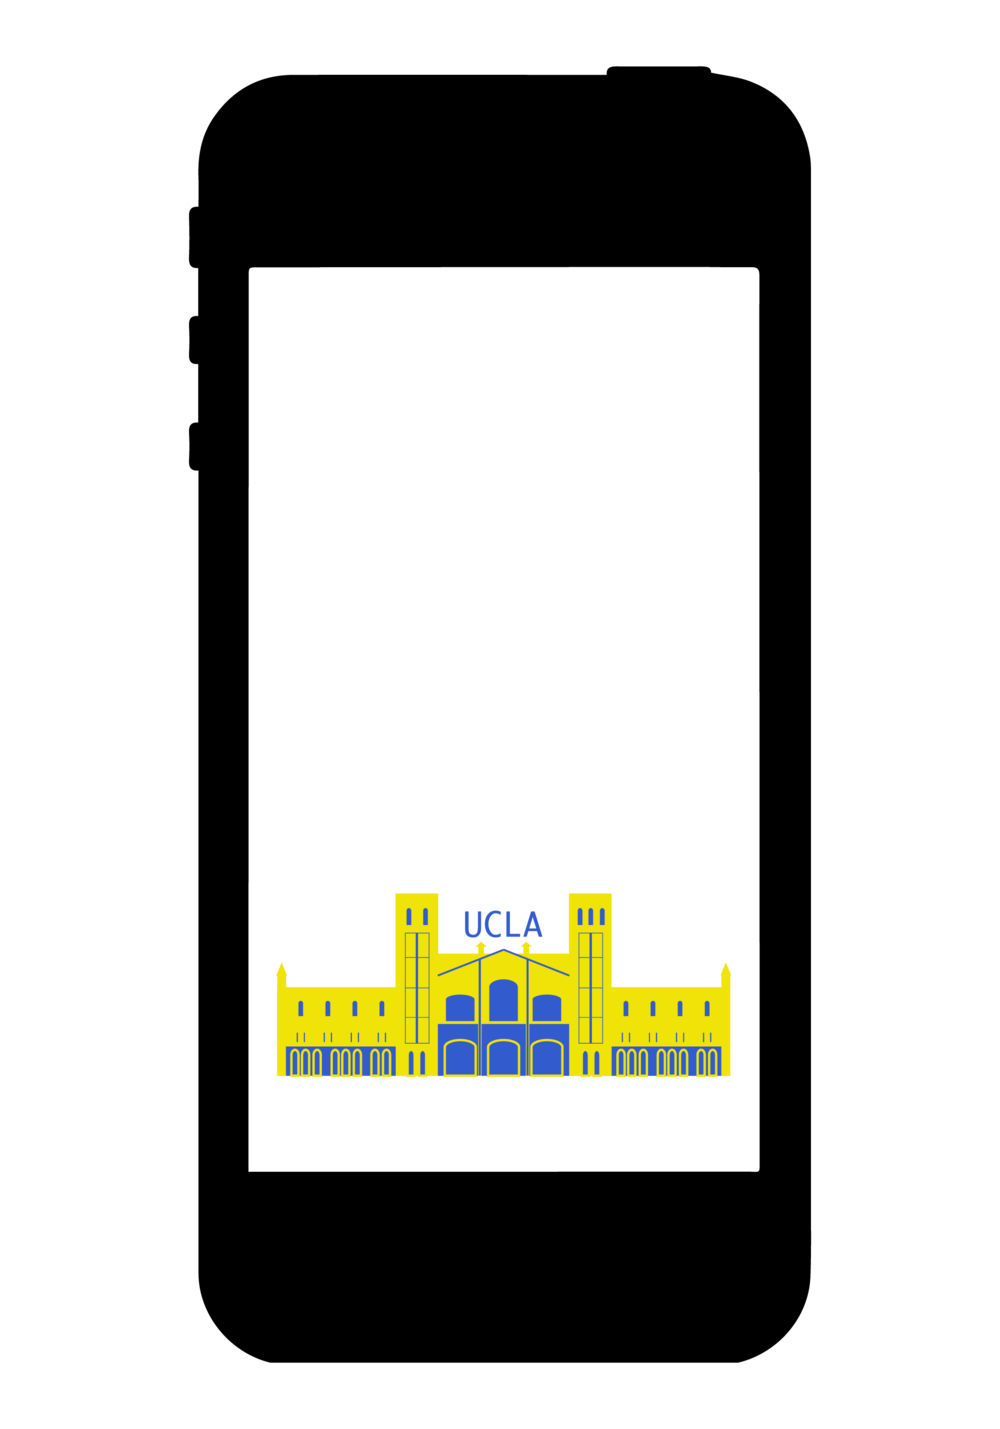 UCLA Royce geofilter-04.png